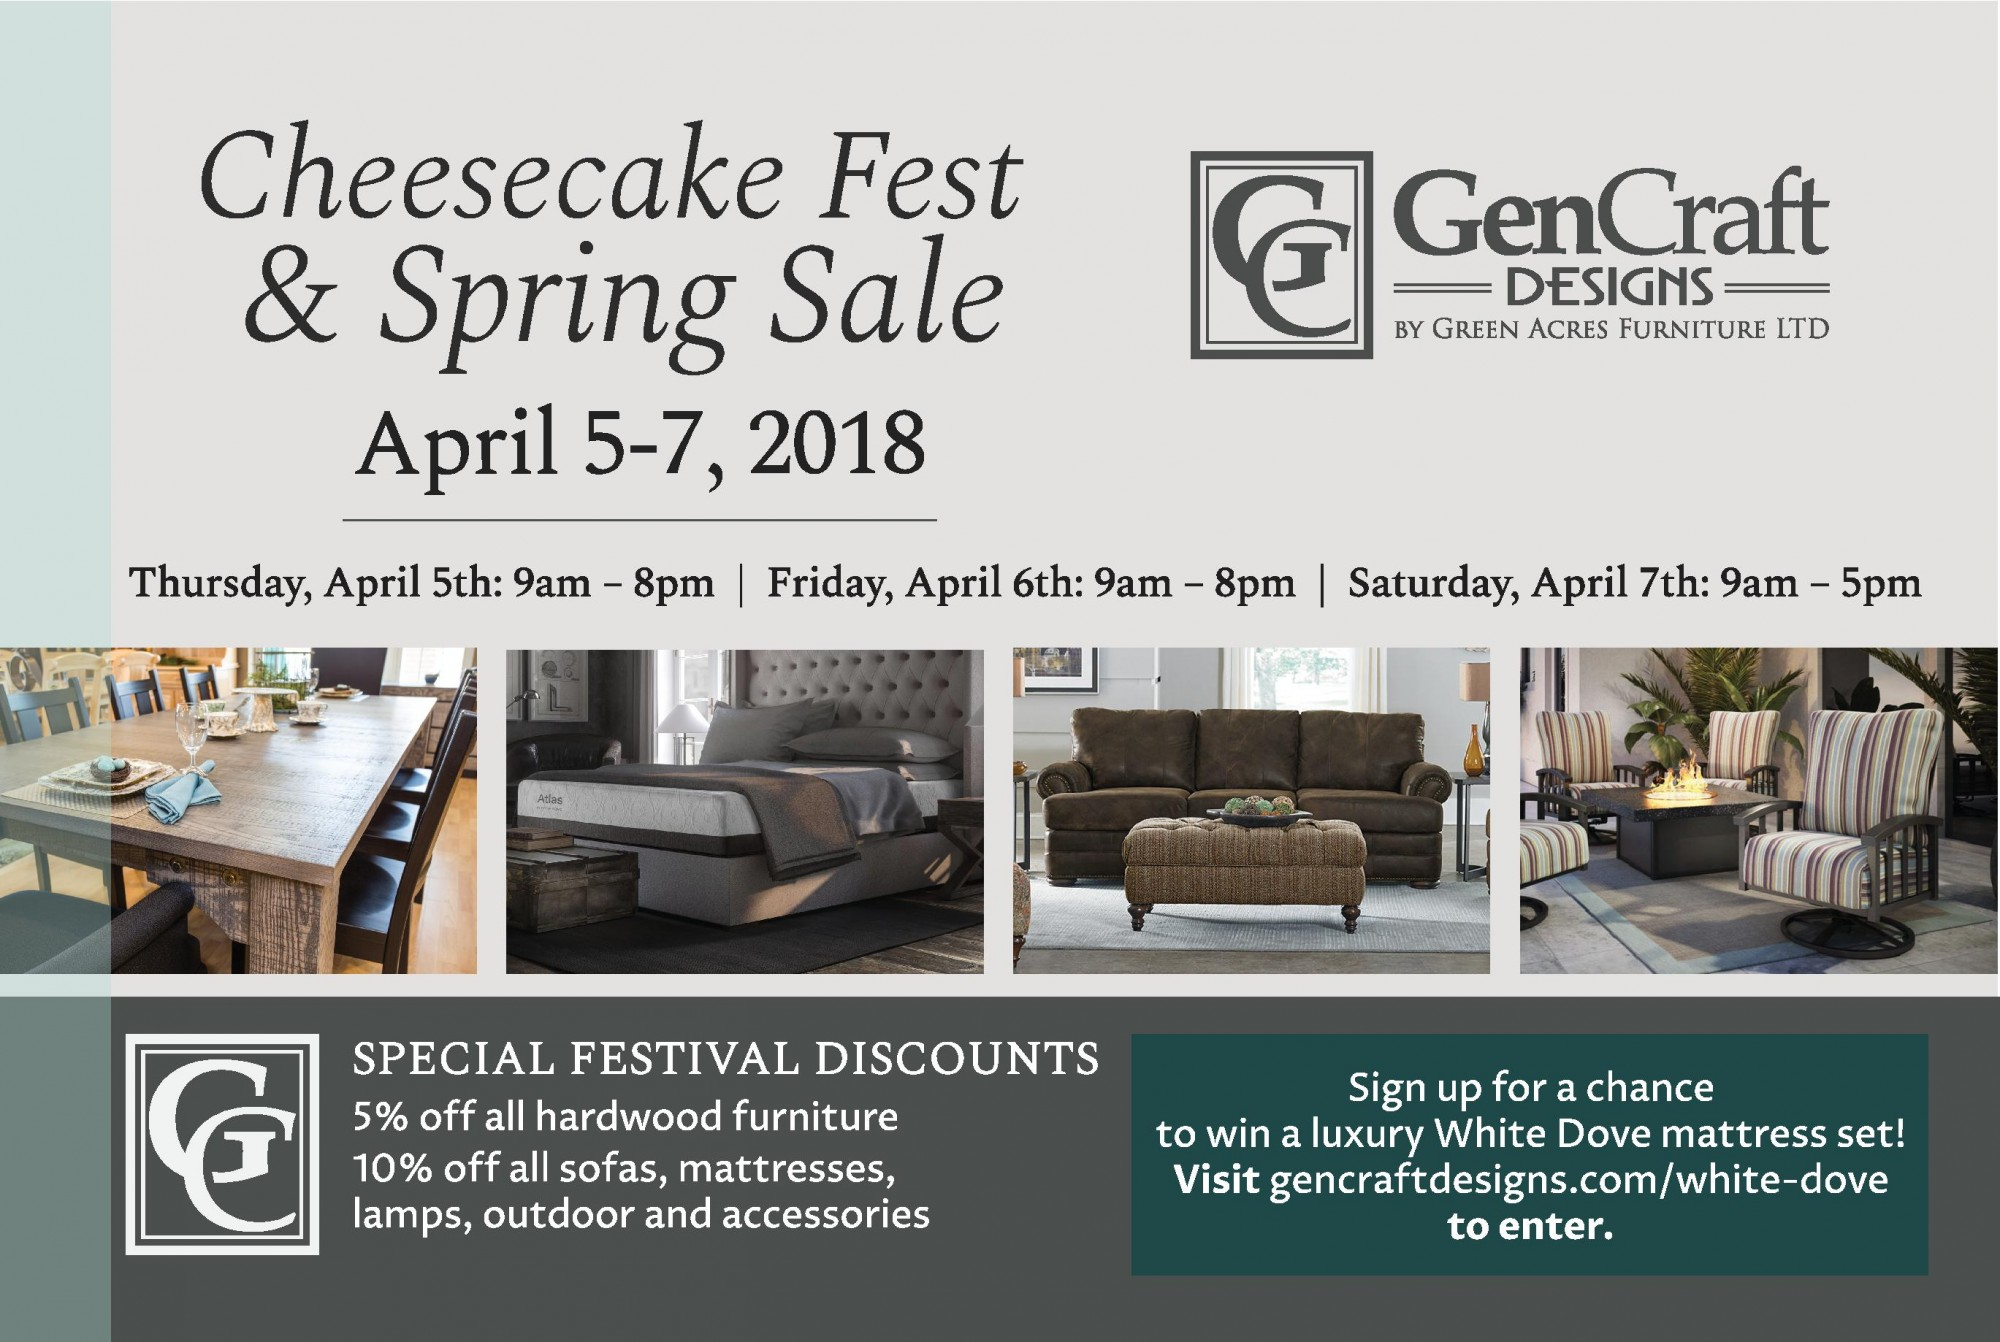 Spring Sale & Cheesecake Fest